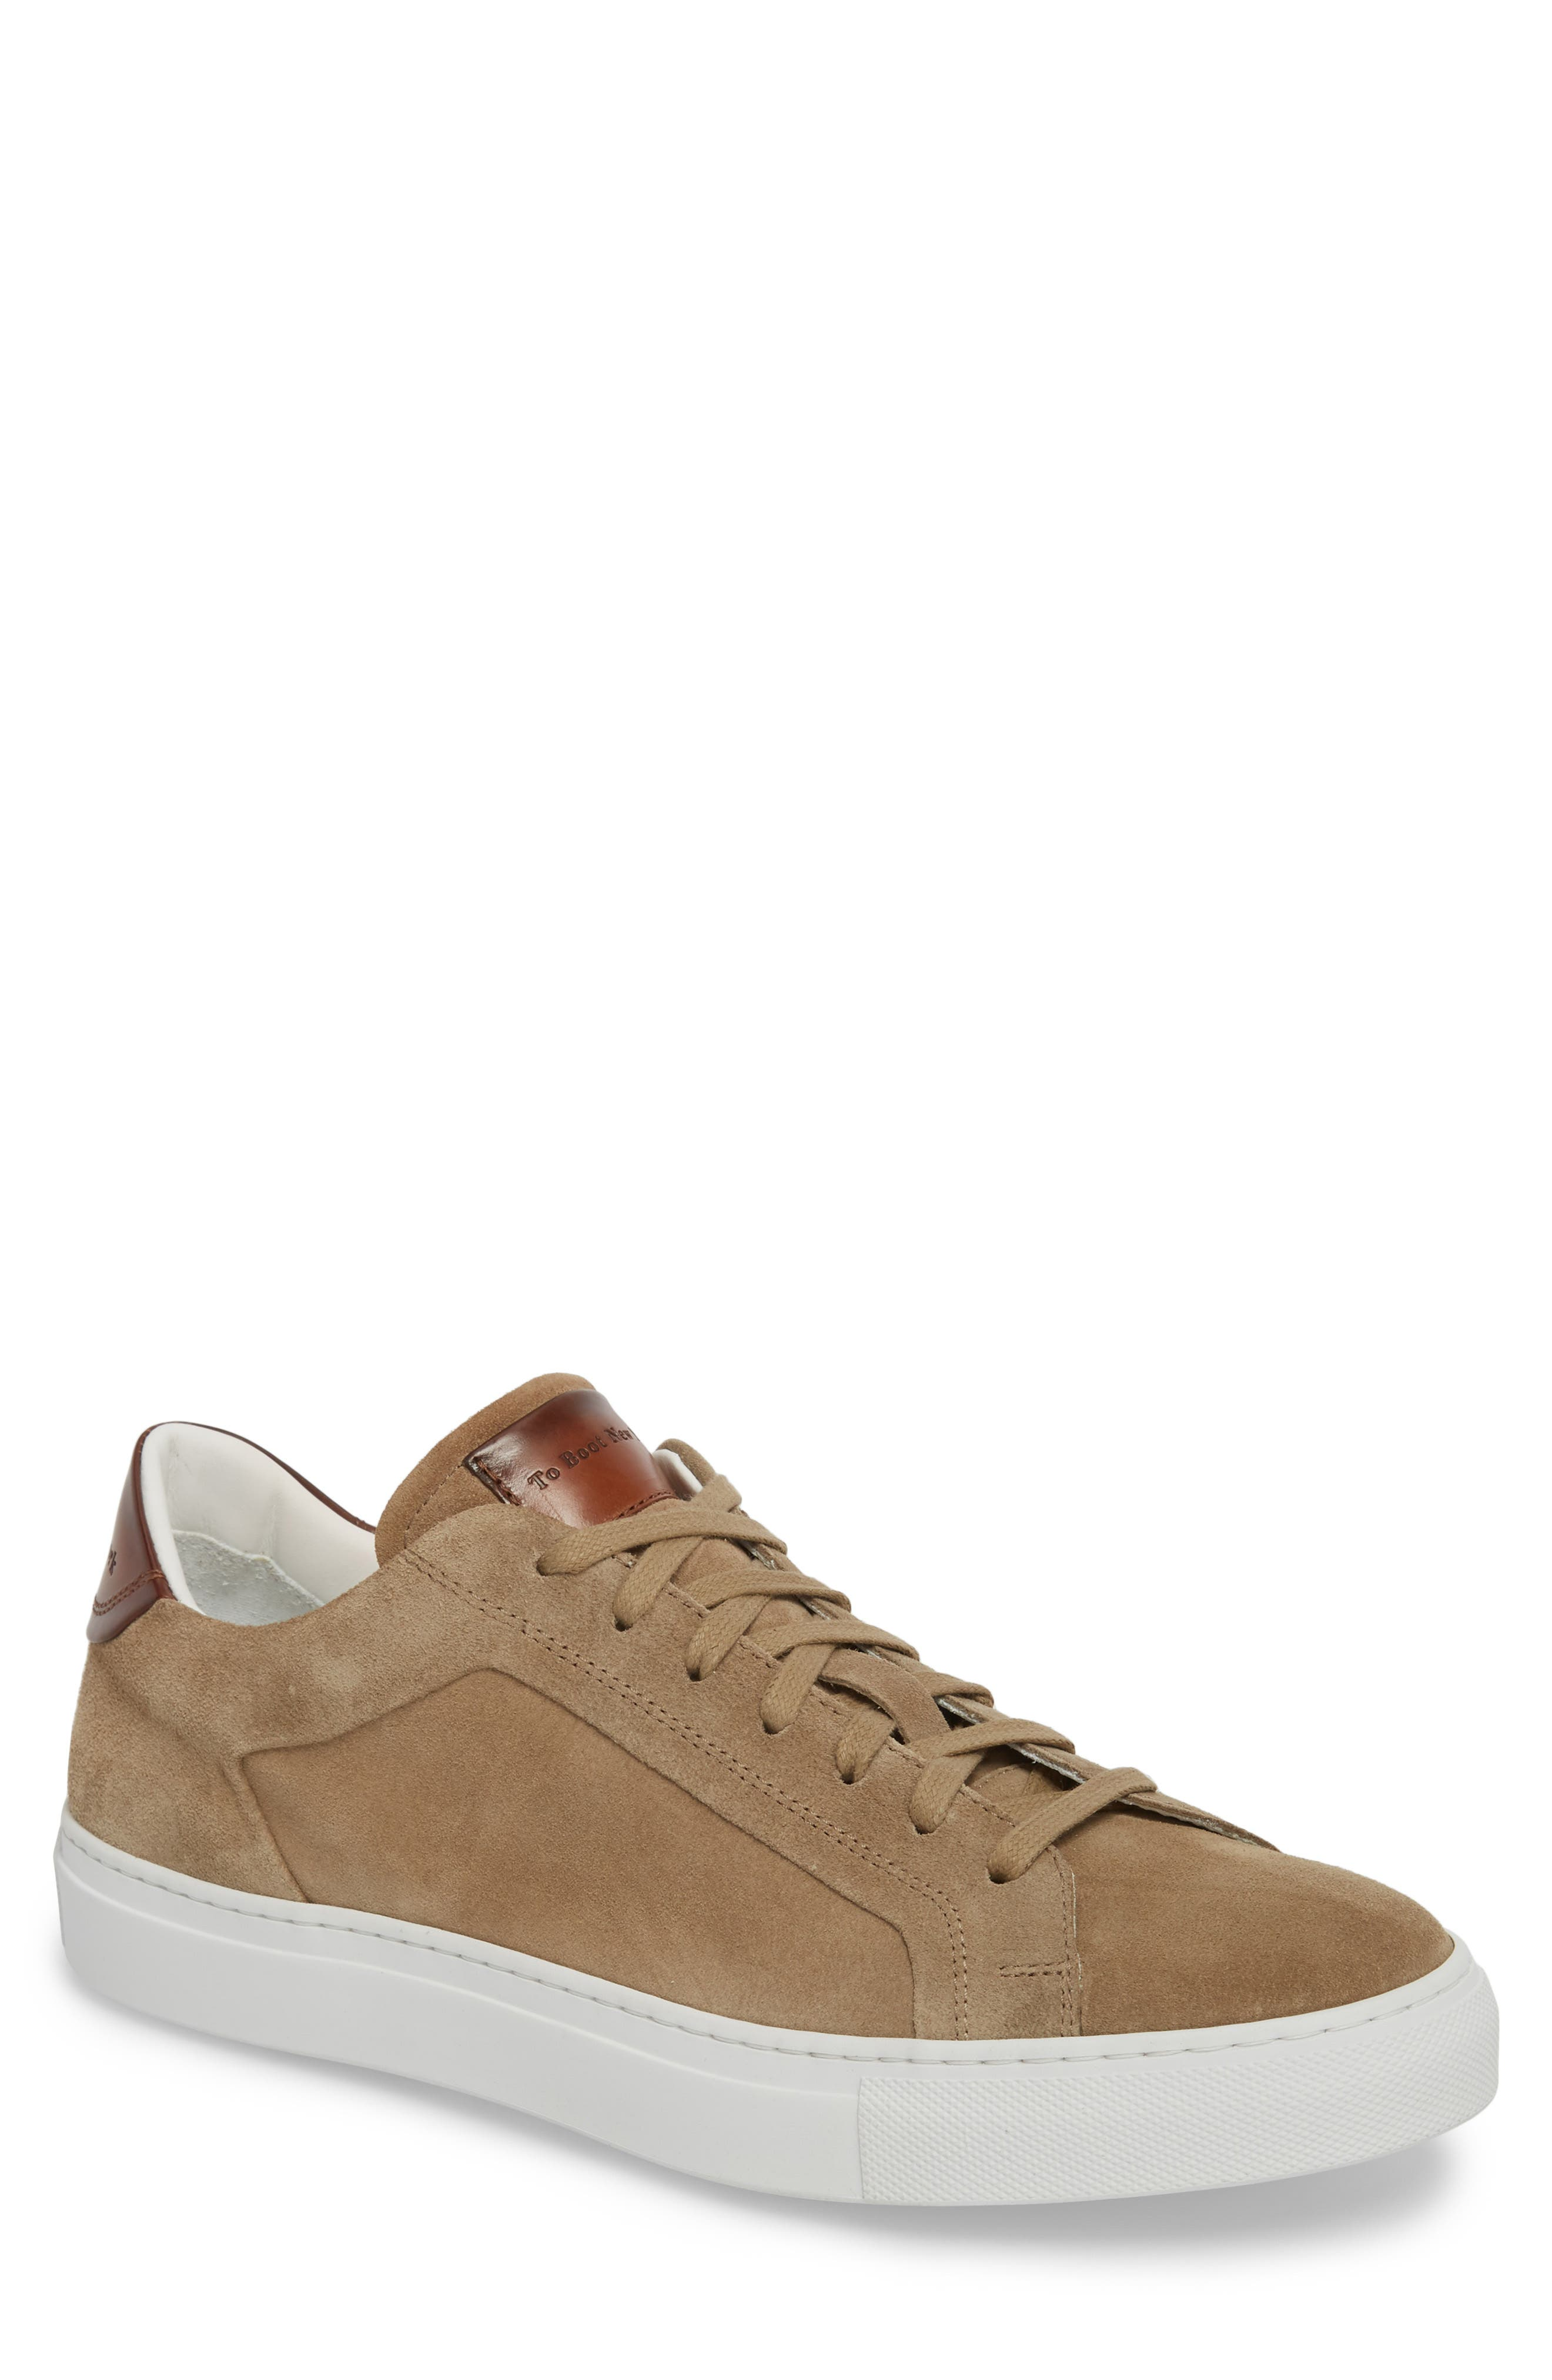 Britt Low Top Sneaker,                         Main,                         color, Tan Suede